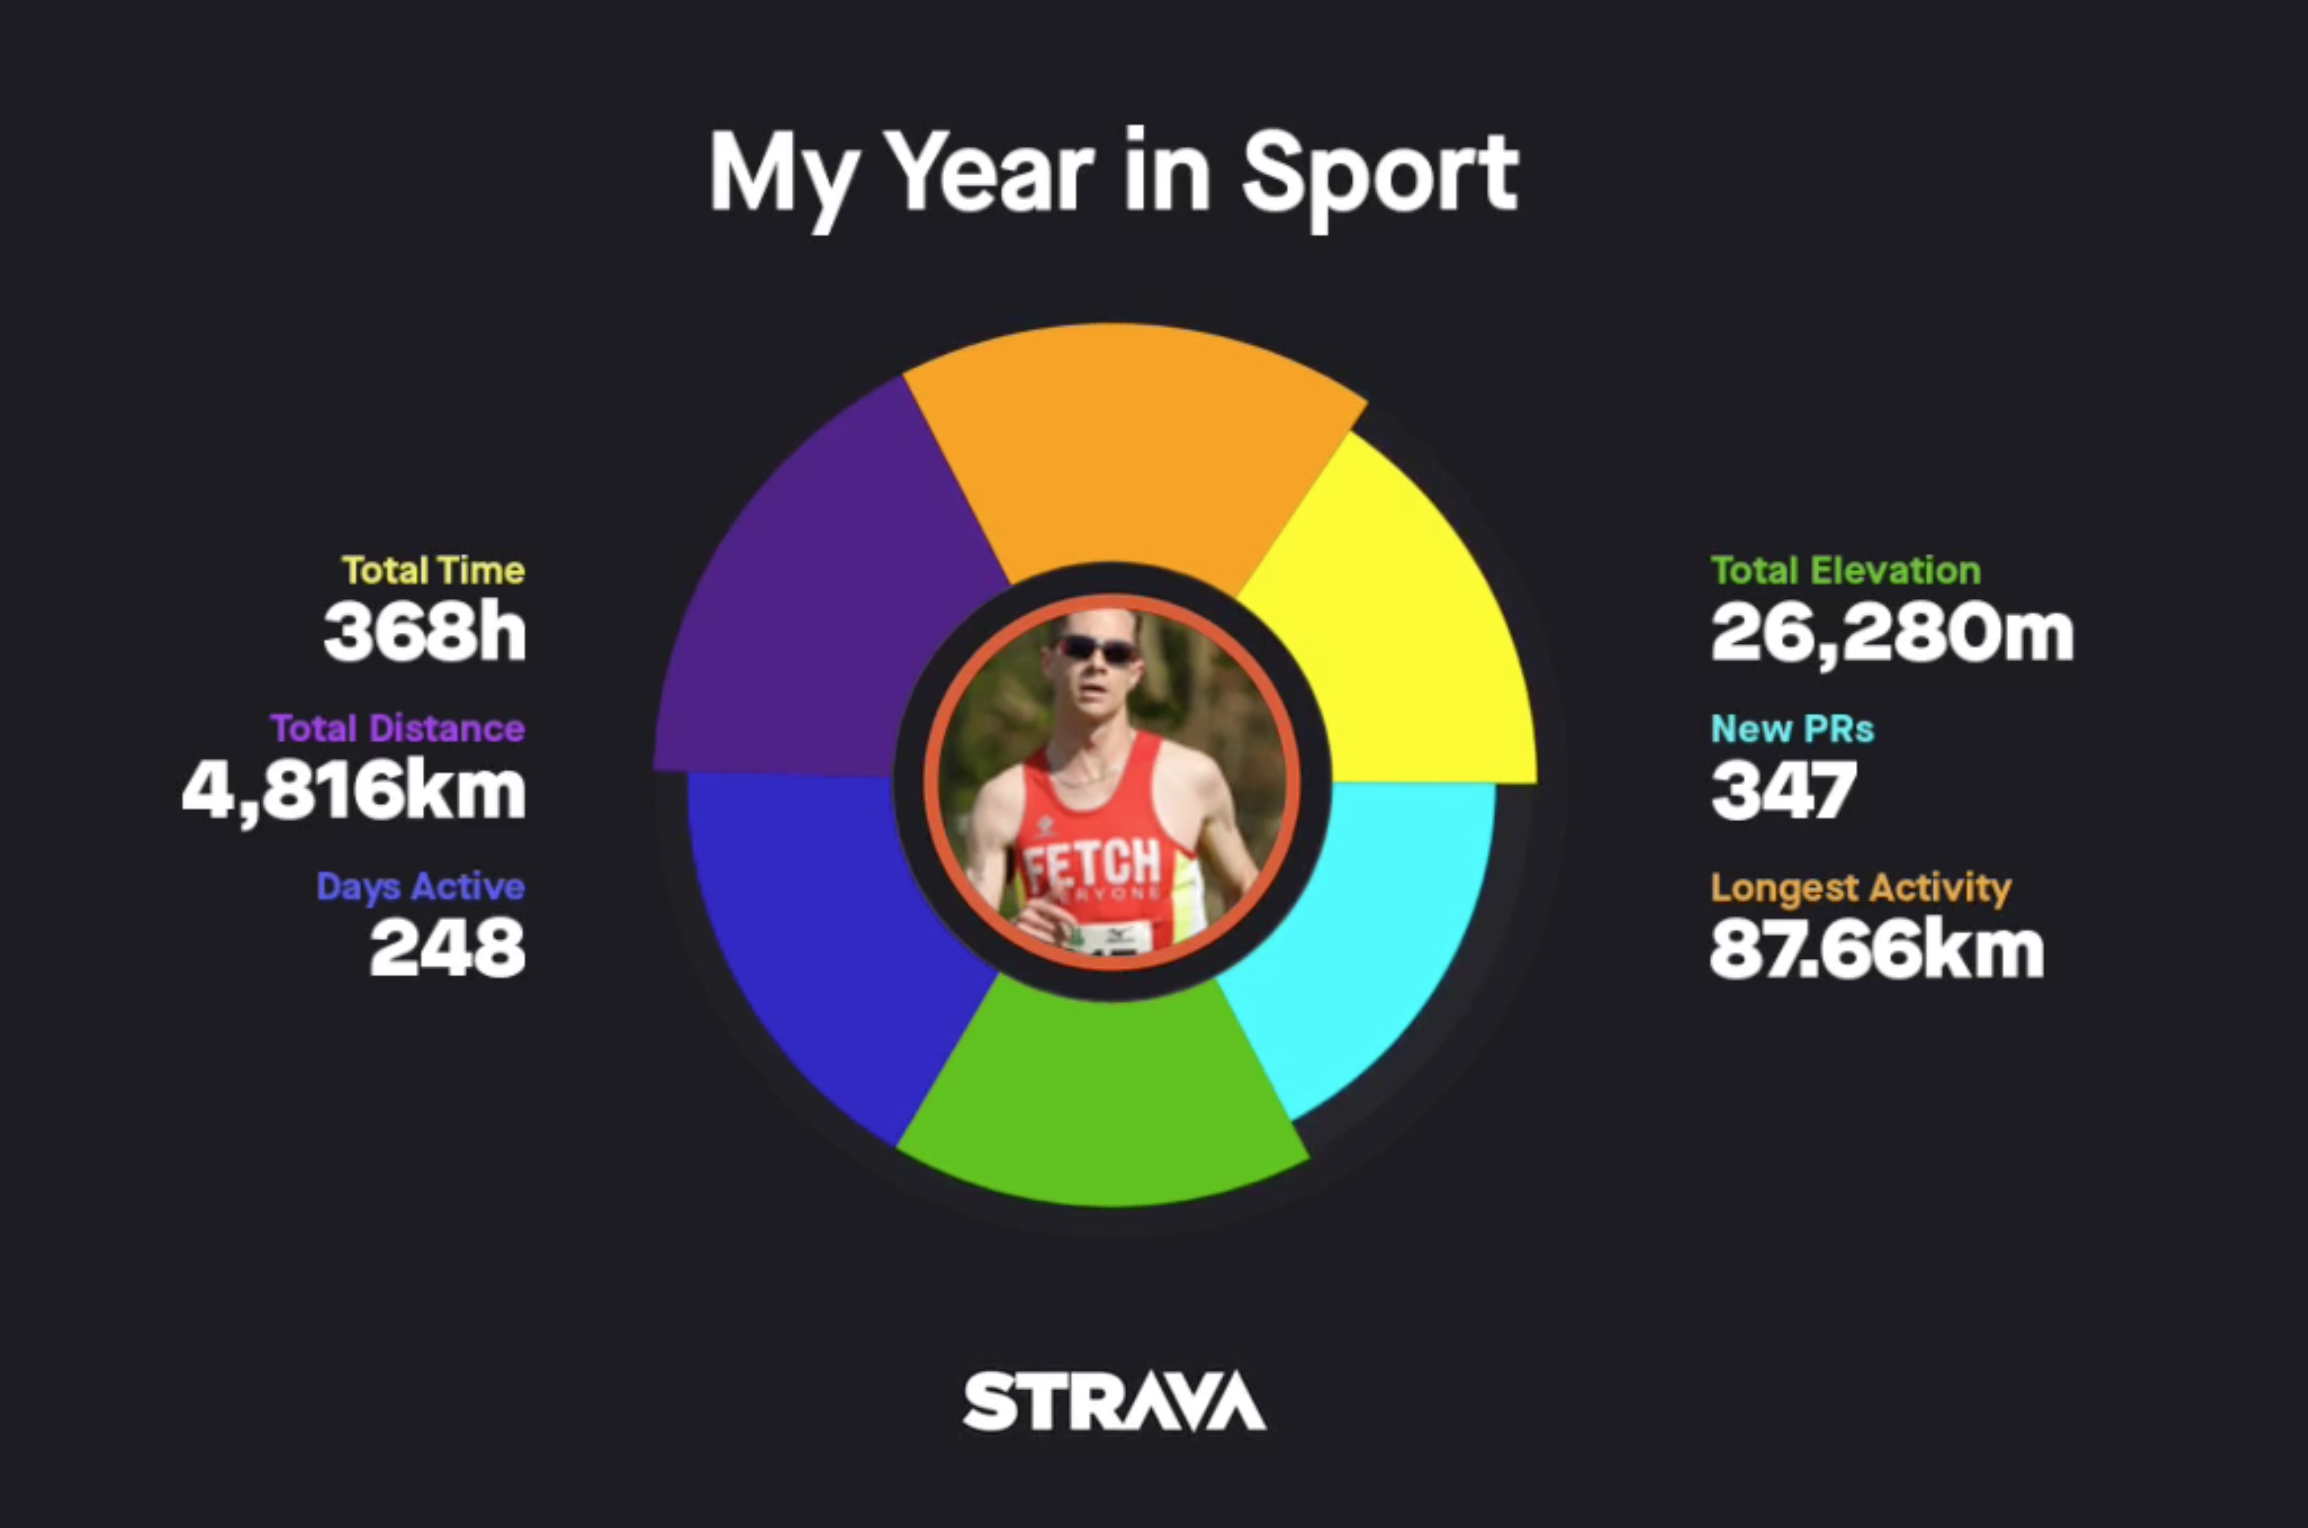 2017 Year in Sport Summary from Strava